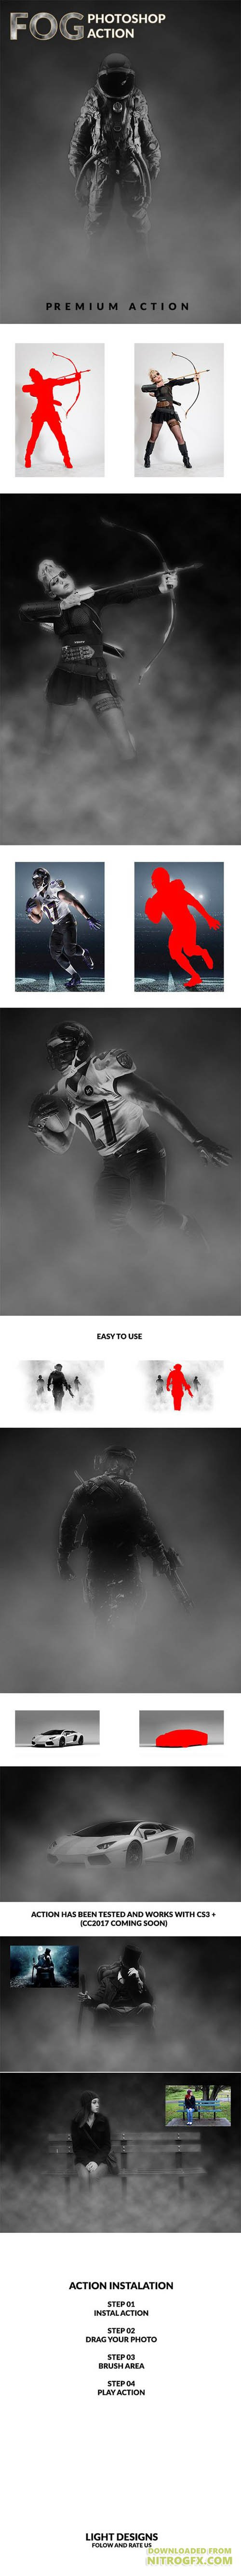 GraphicRiver - Fog - Photoshop Action 20368362